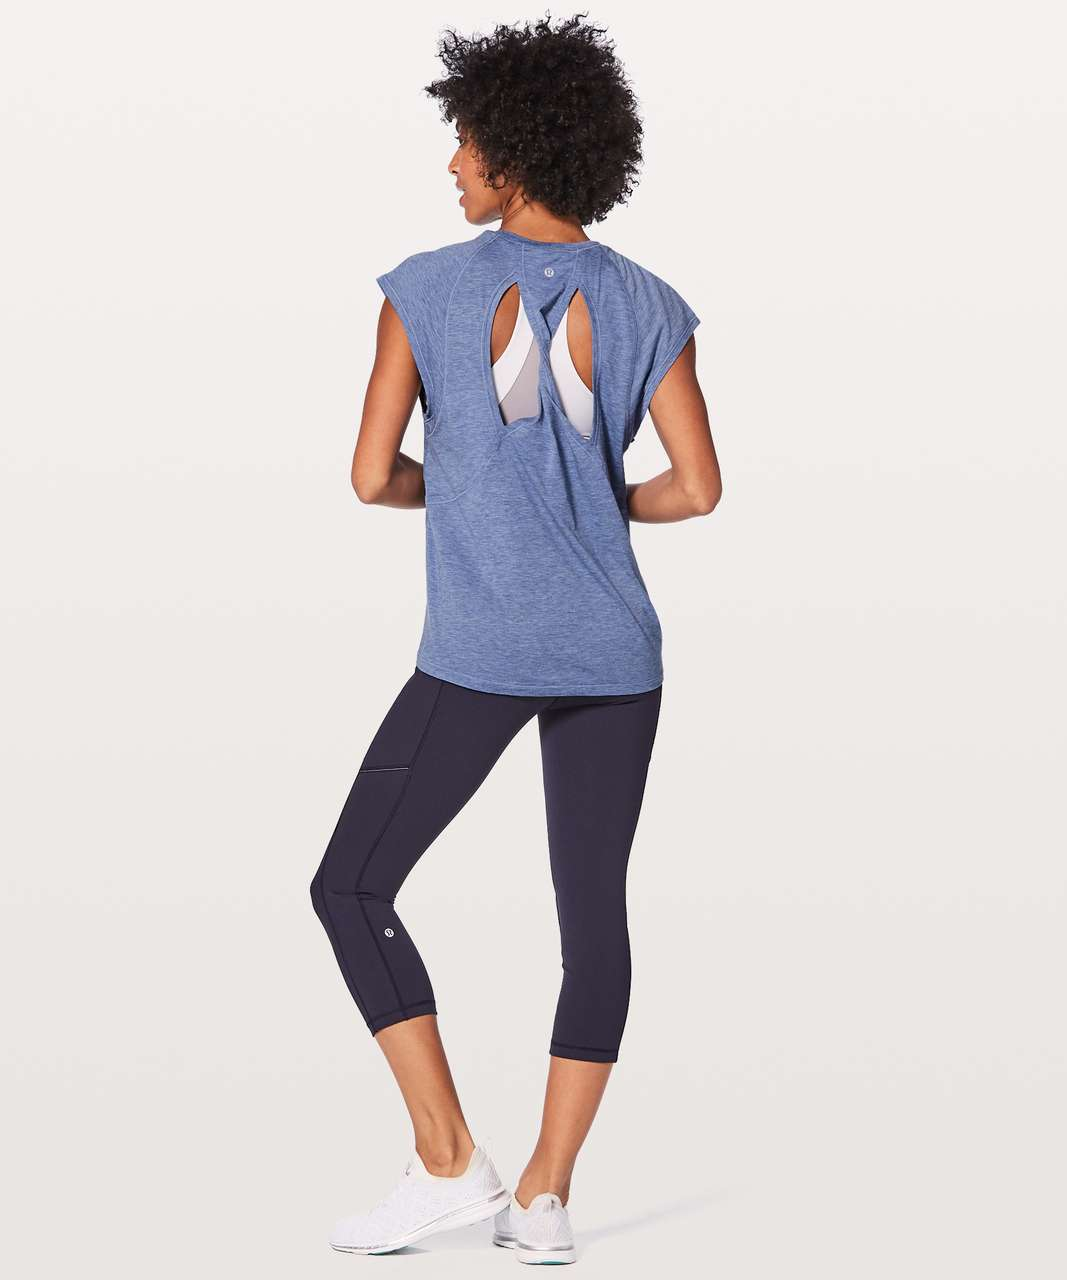 Lululemon Stop Drop & Squat Short Sleeve - Heathered Blazer Blue